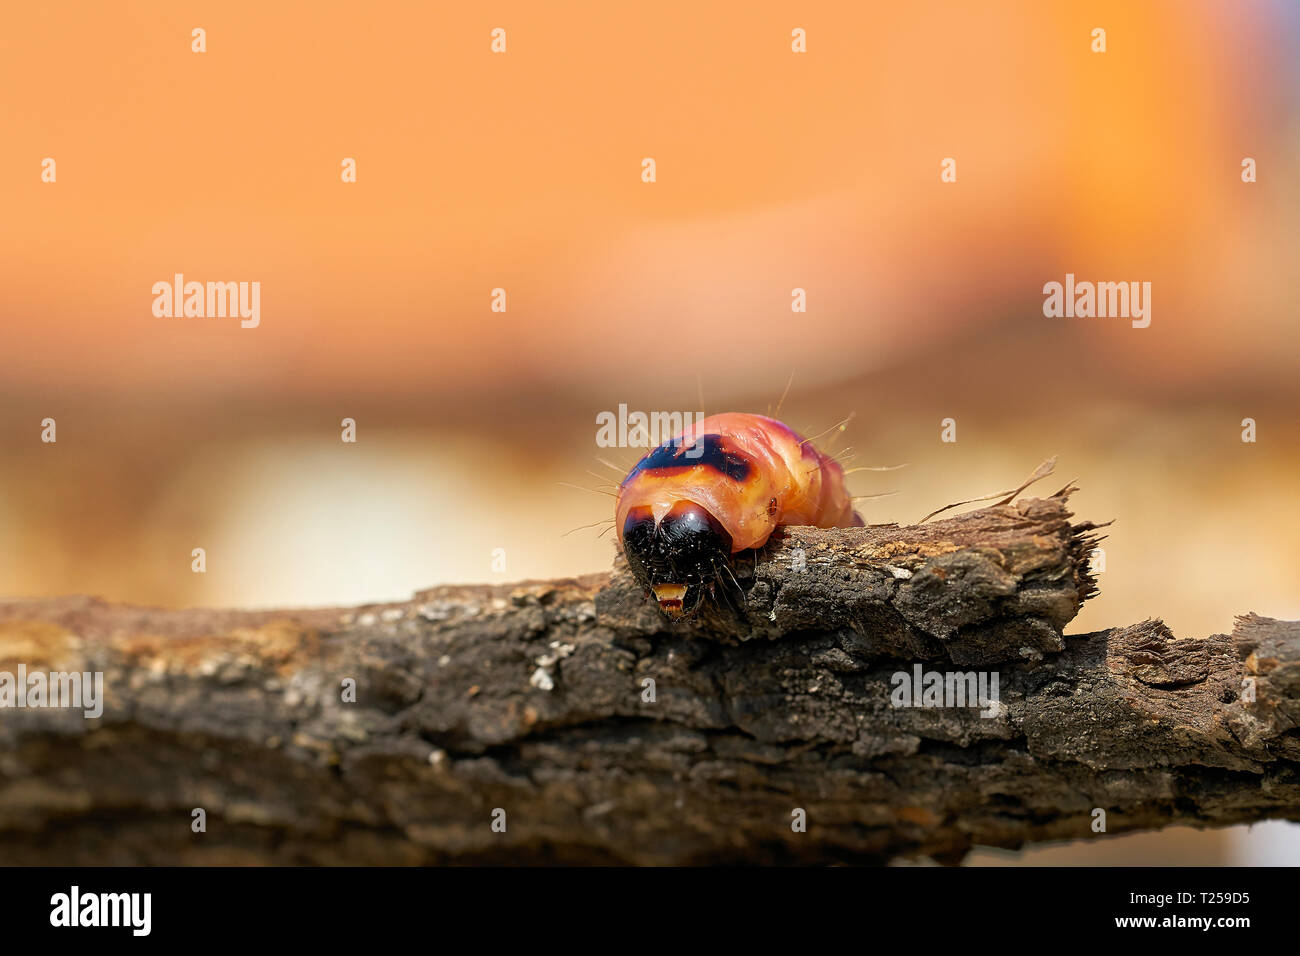 Larva of a goat moth (Cossus Cossus) on the bark of a tree Stock Photo